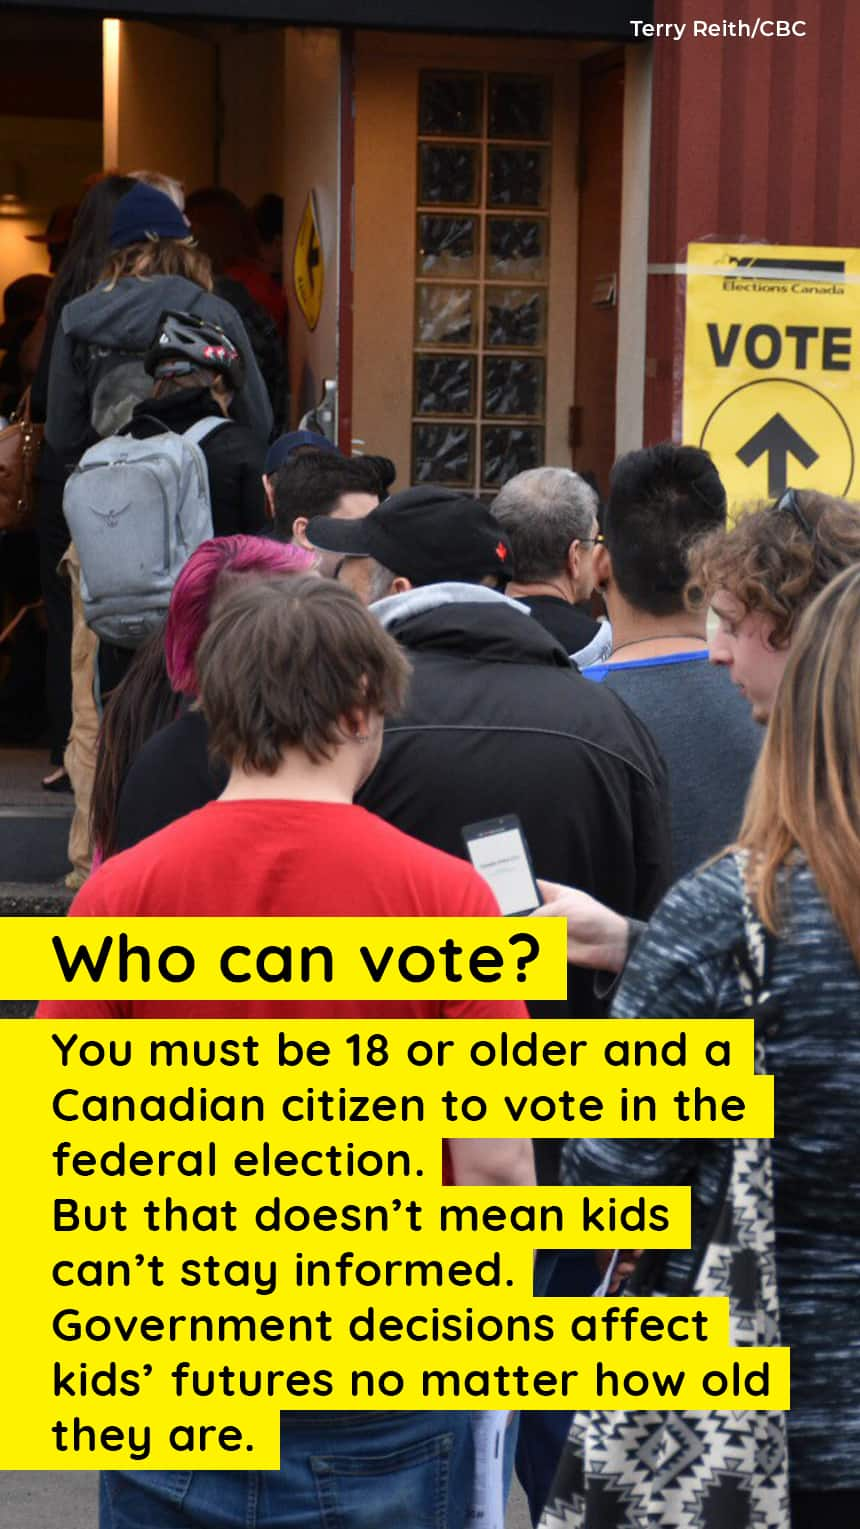 An image of people lining up to vote outside a polling station with text that says, Who can vote? You must be 18 or older and a Canadian citizen to vote in the federal election. But that doesn't mean kids can't stay informed. Government decisions affect kids' future no matter how old they are.